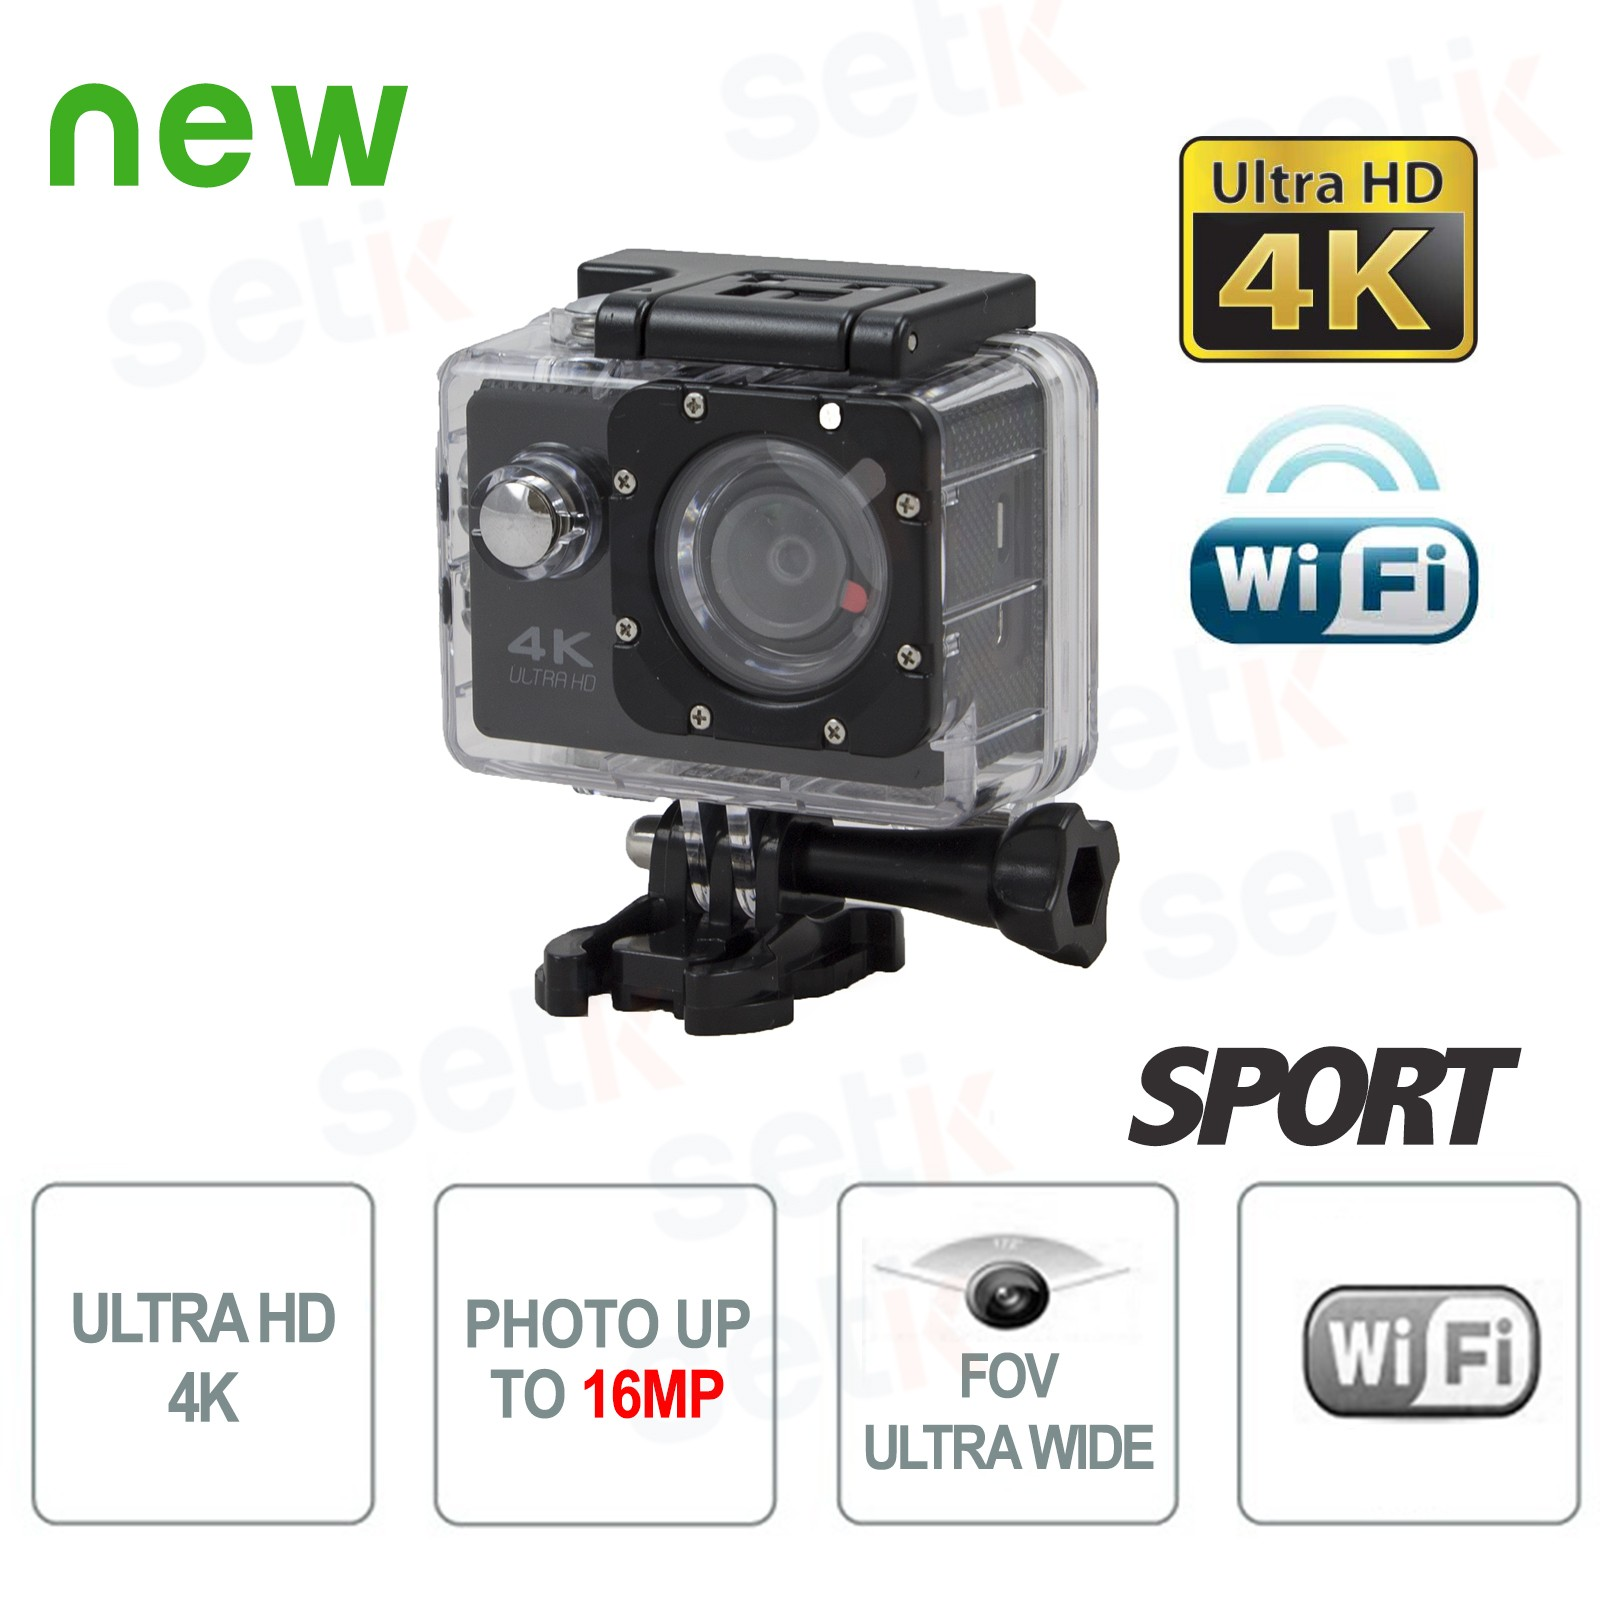 X Pro 6s 4k Action Camera 12 Mp Spt4kw Ultra Hd Wifi 12mp Waterproof Sports Full Helmet Cam Prices